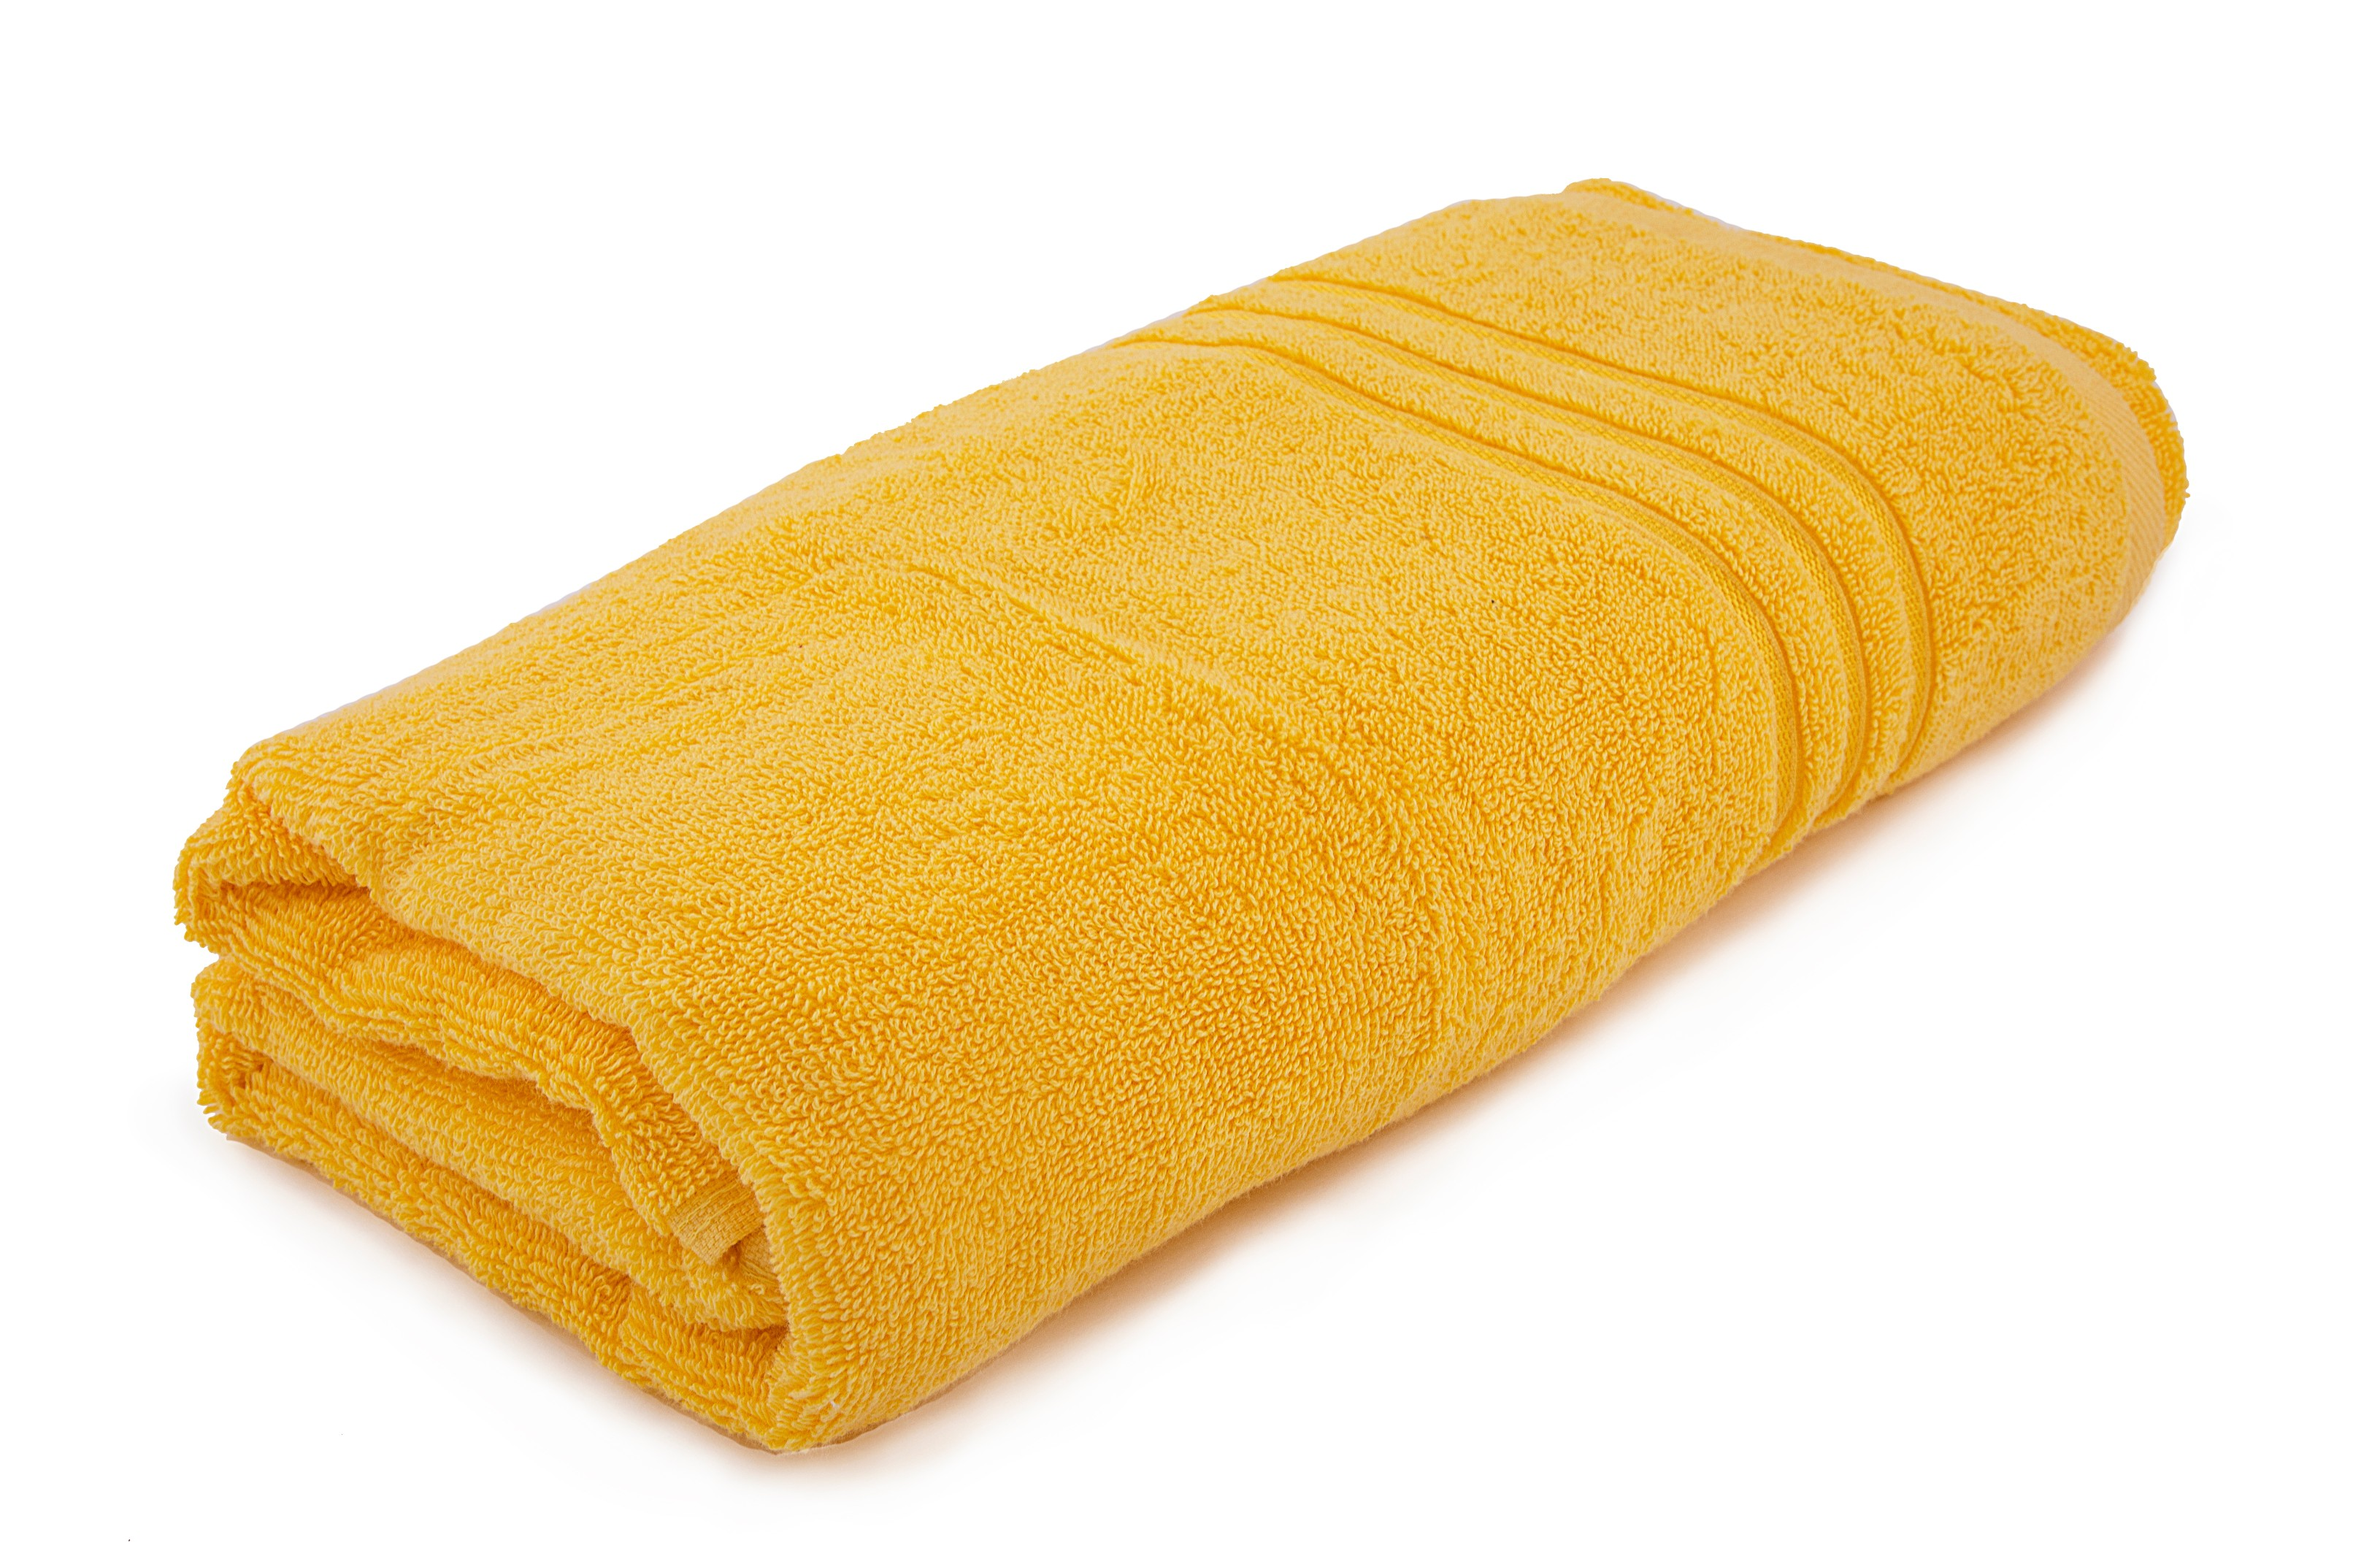 Bath Towel Nora Yellow Cotton Bath Towels in Nora Yellow Colour by HomeTown